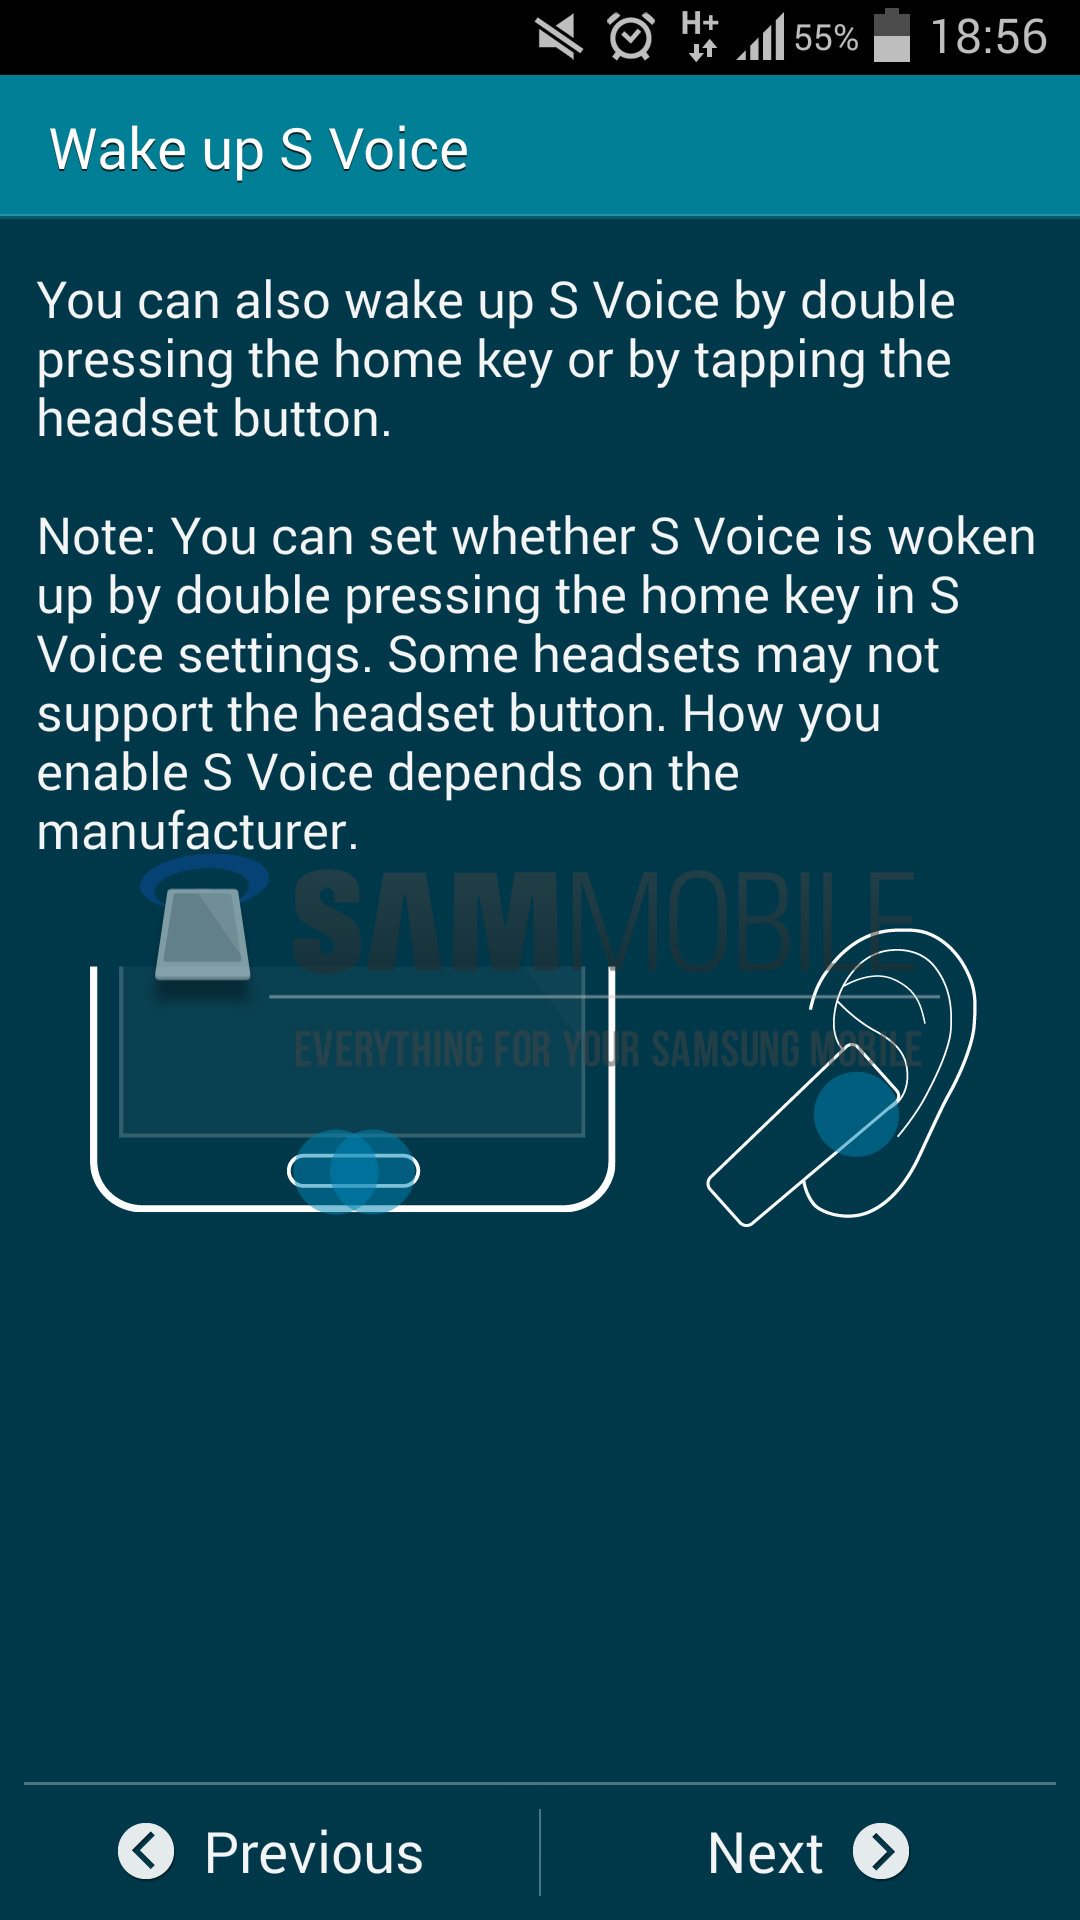 EXCLUSIVE: A look at Samsung's updated S Voice app - News